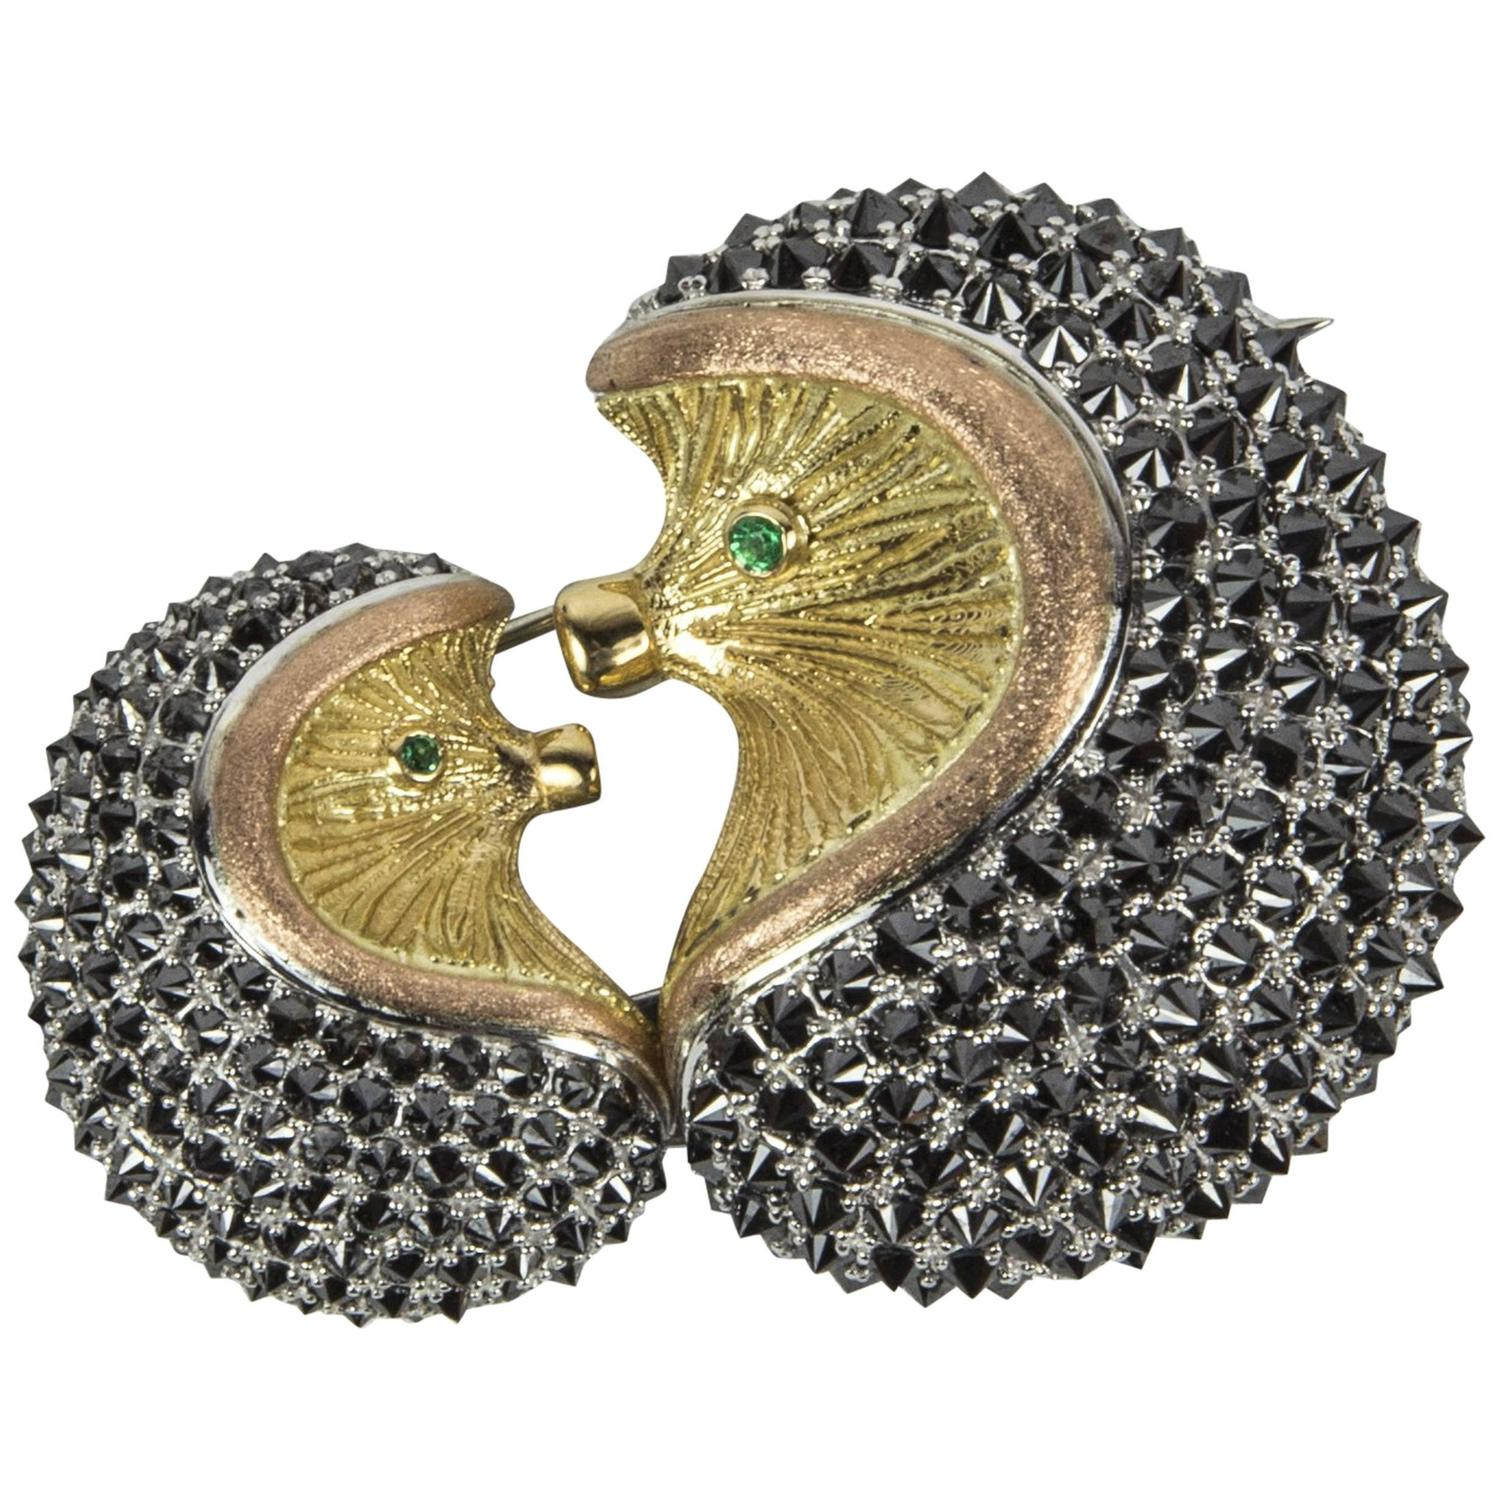 coniglio official animalier fb jewelry en buccellati brooch high spilla brooches website rabbit